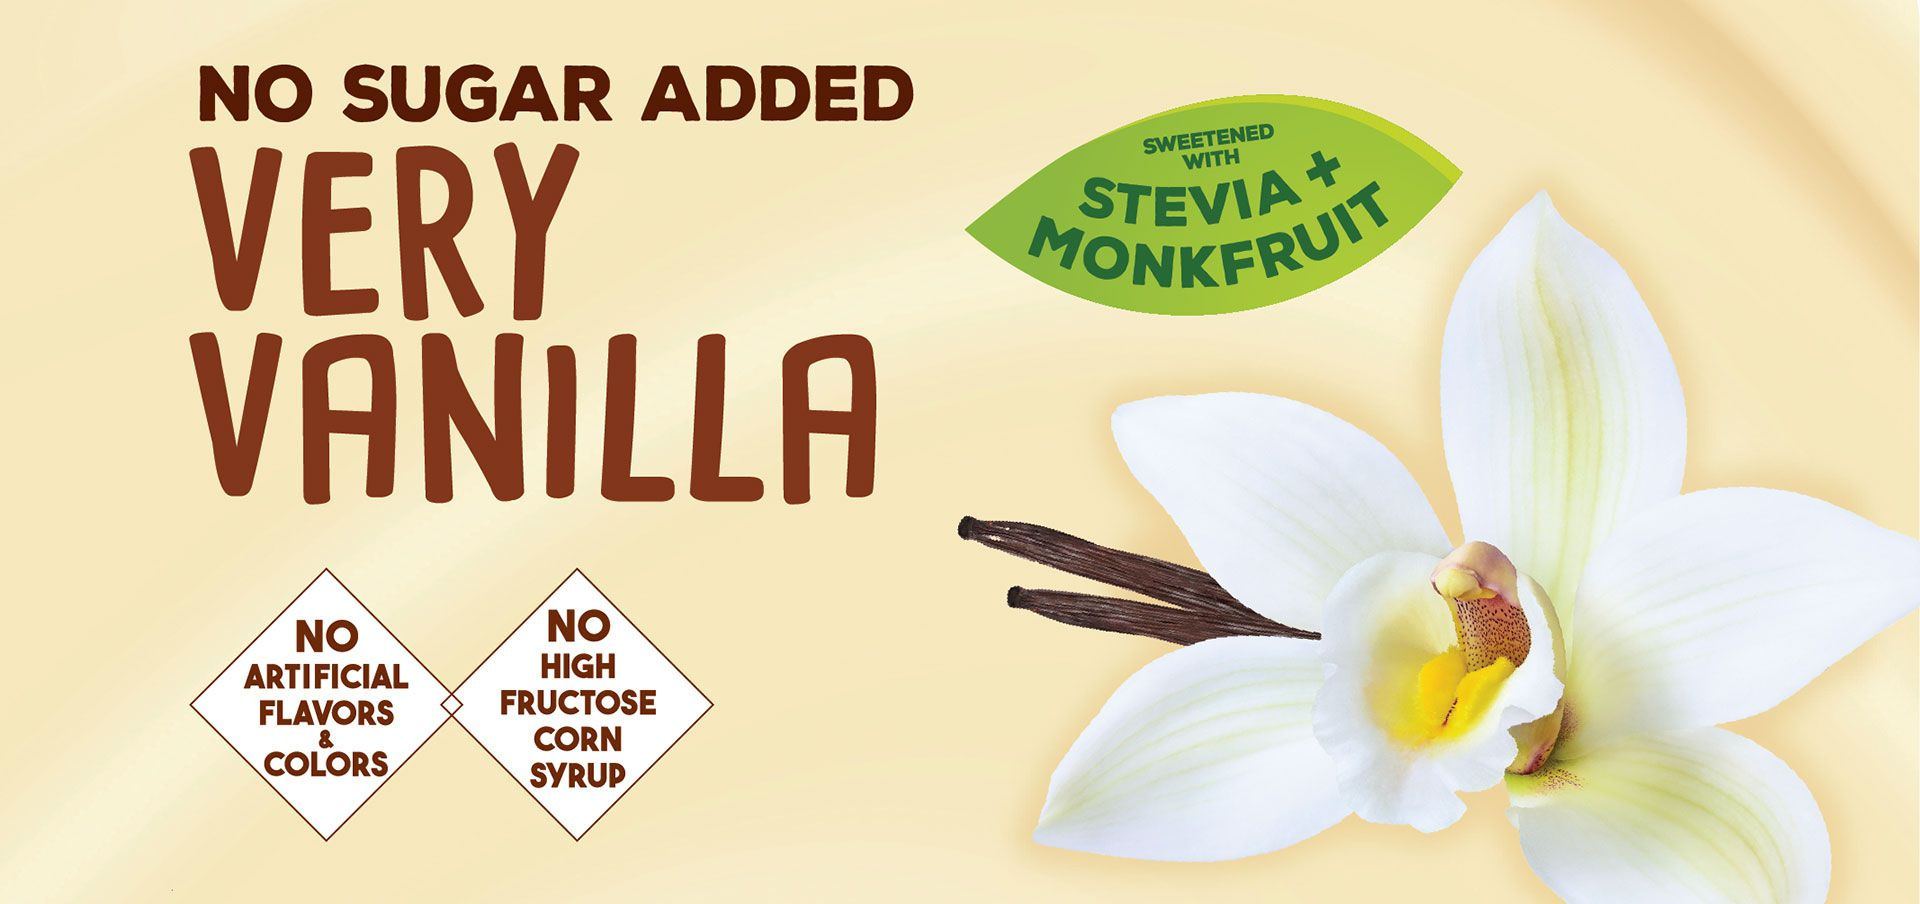 no sugar added very vanilla label image